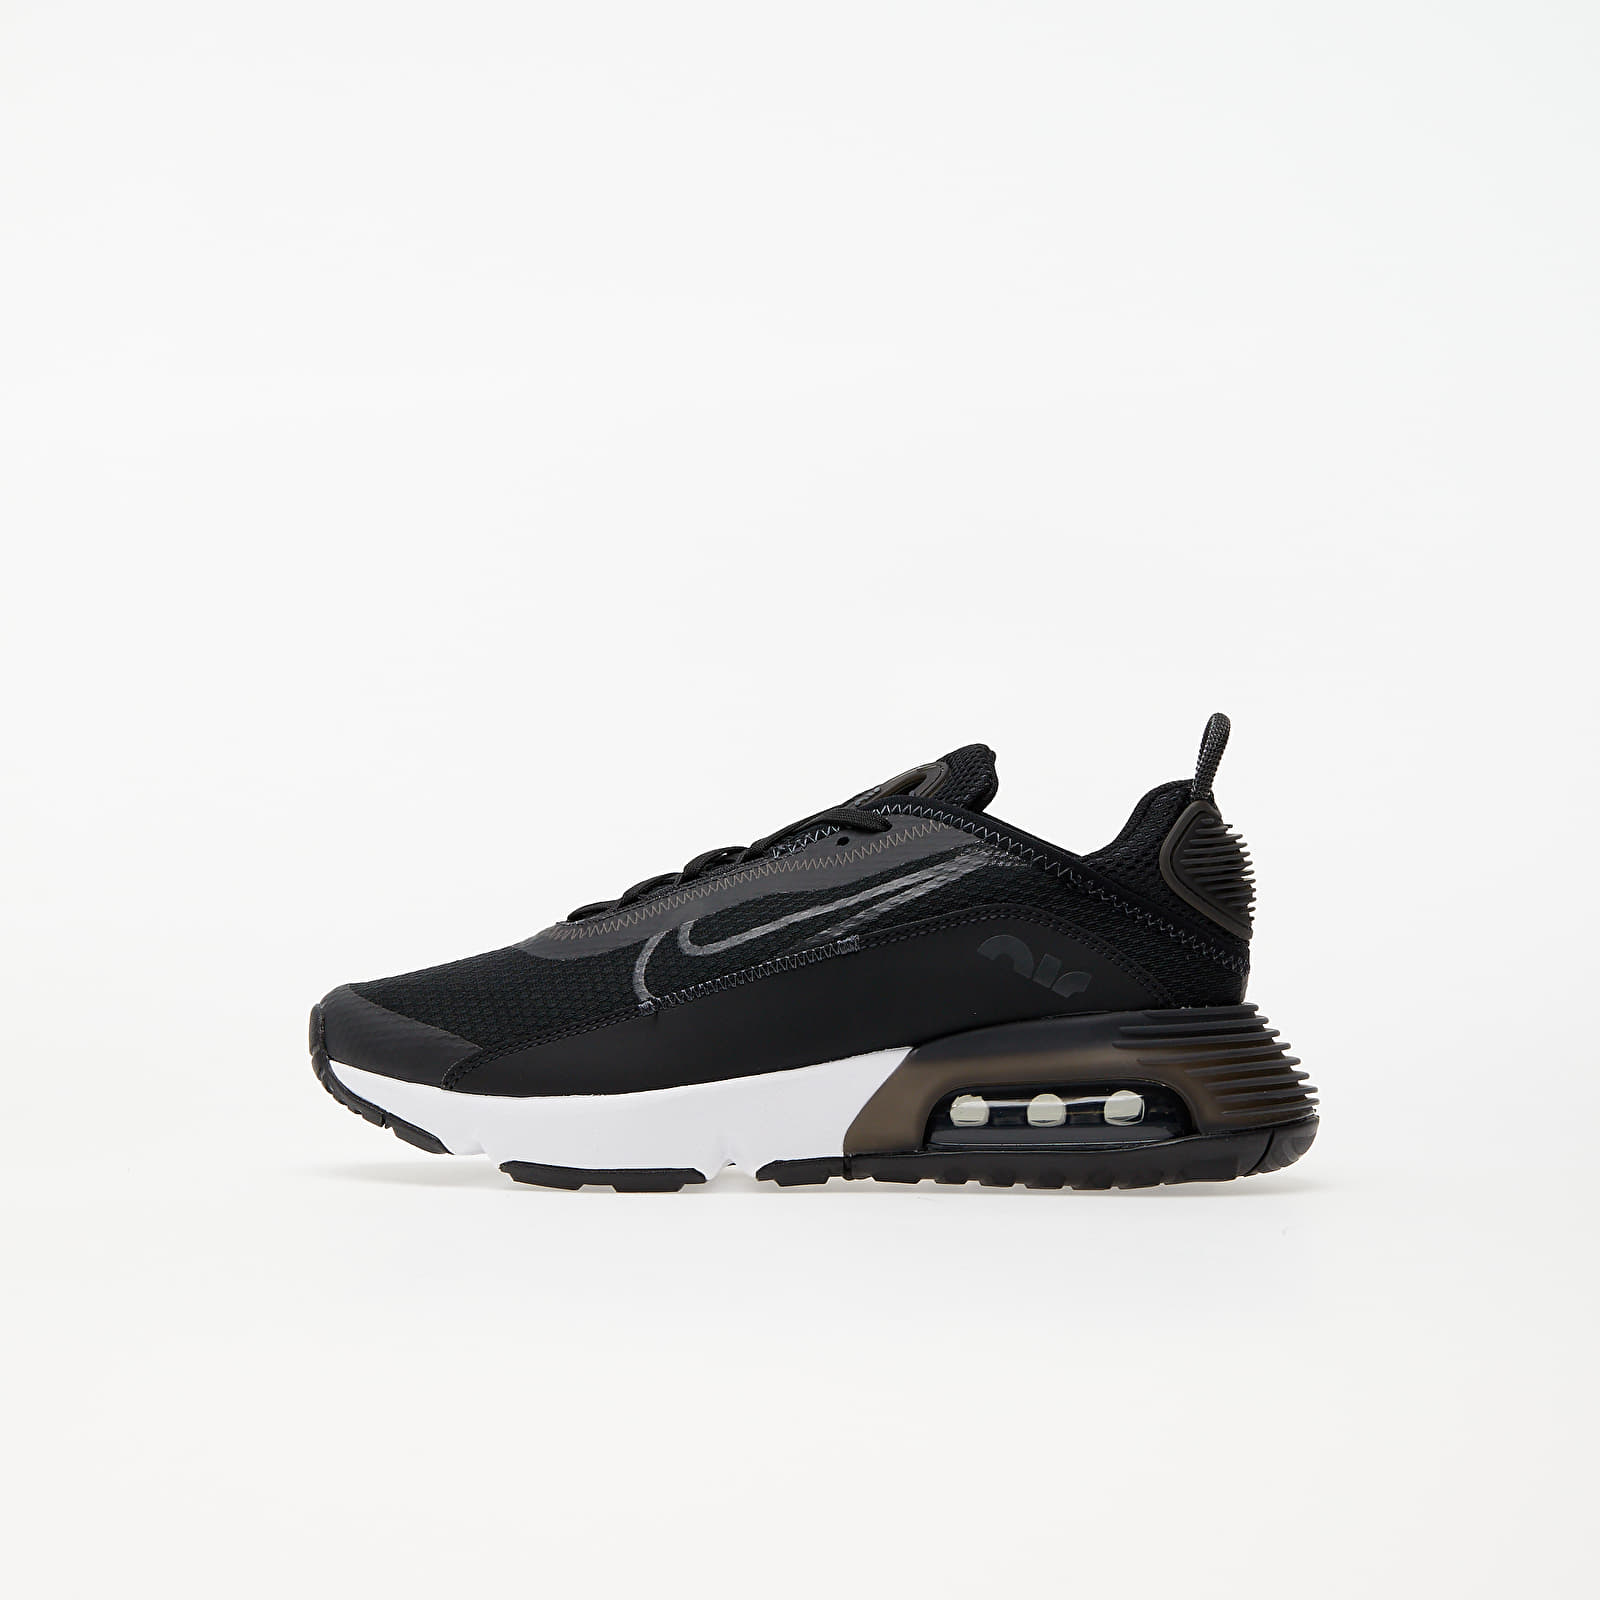 Nike Air Max 2090 GS Black/ Anthracite-White-Wolf Grey EUR 37.5